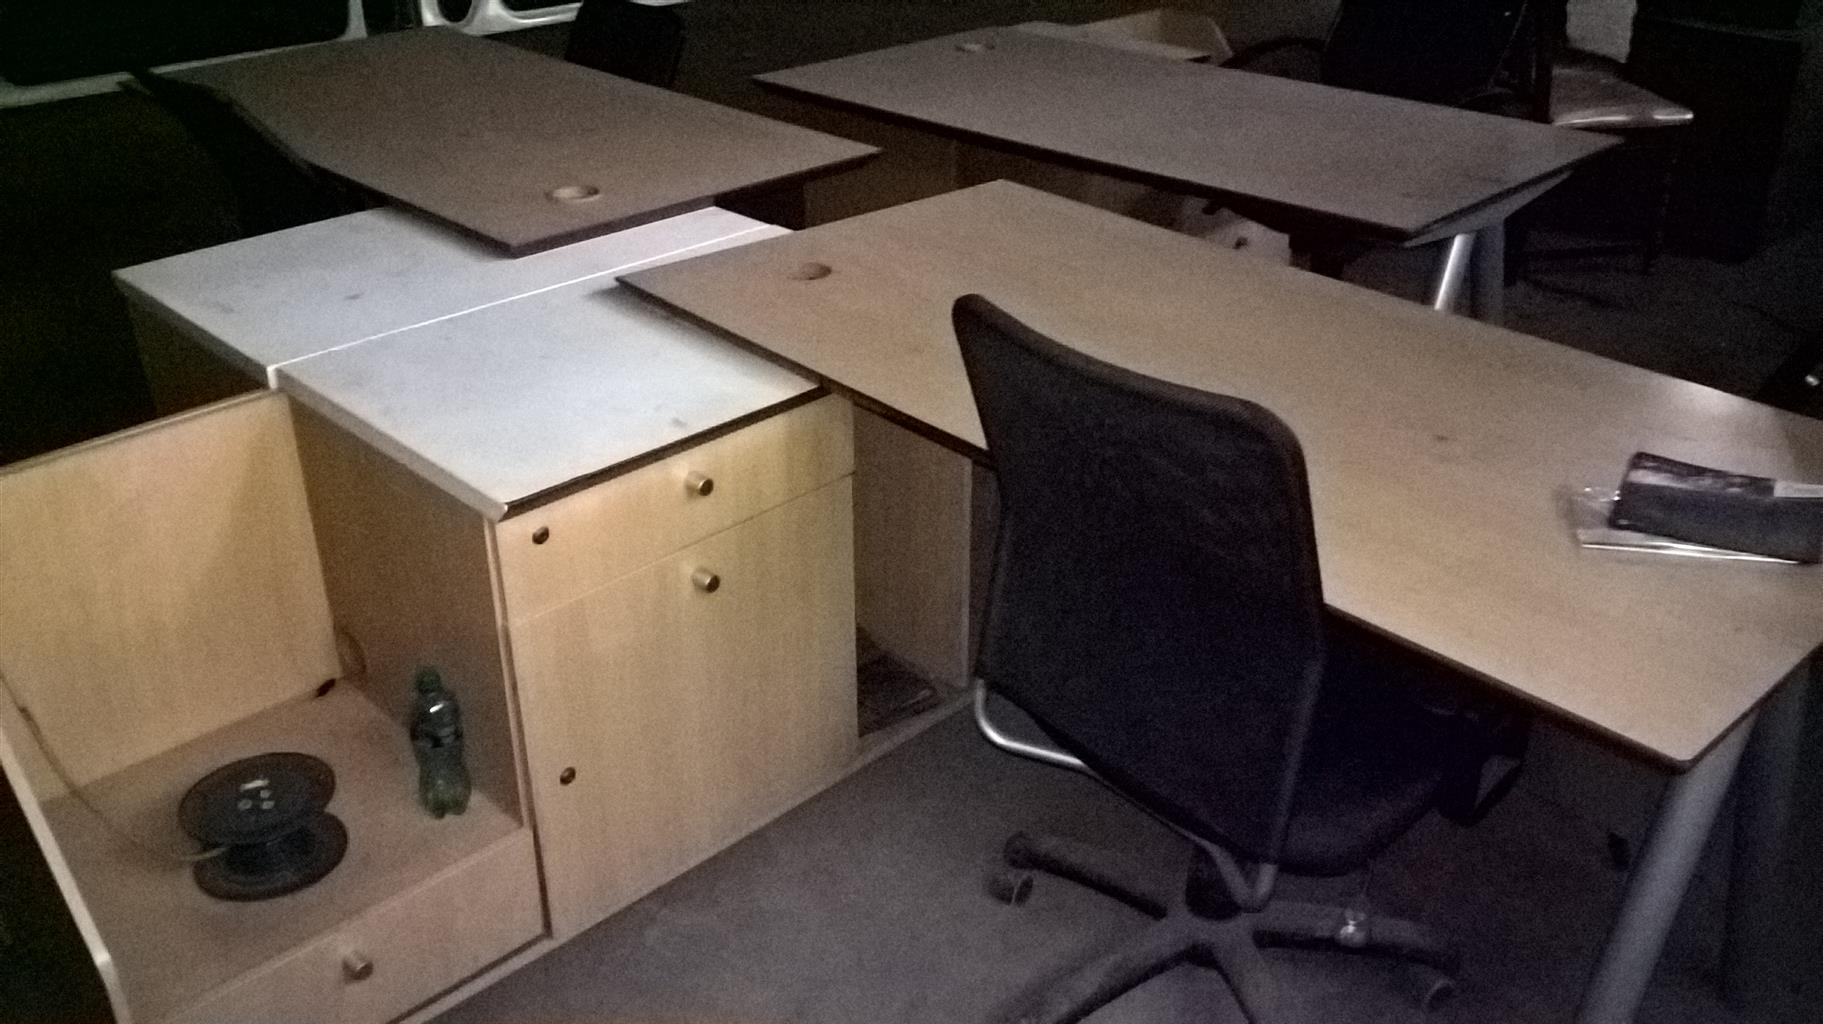 get 2 office desk at the price of 1